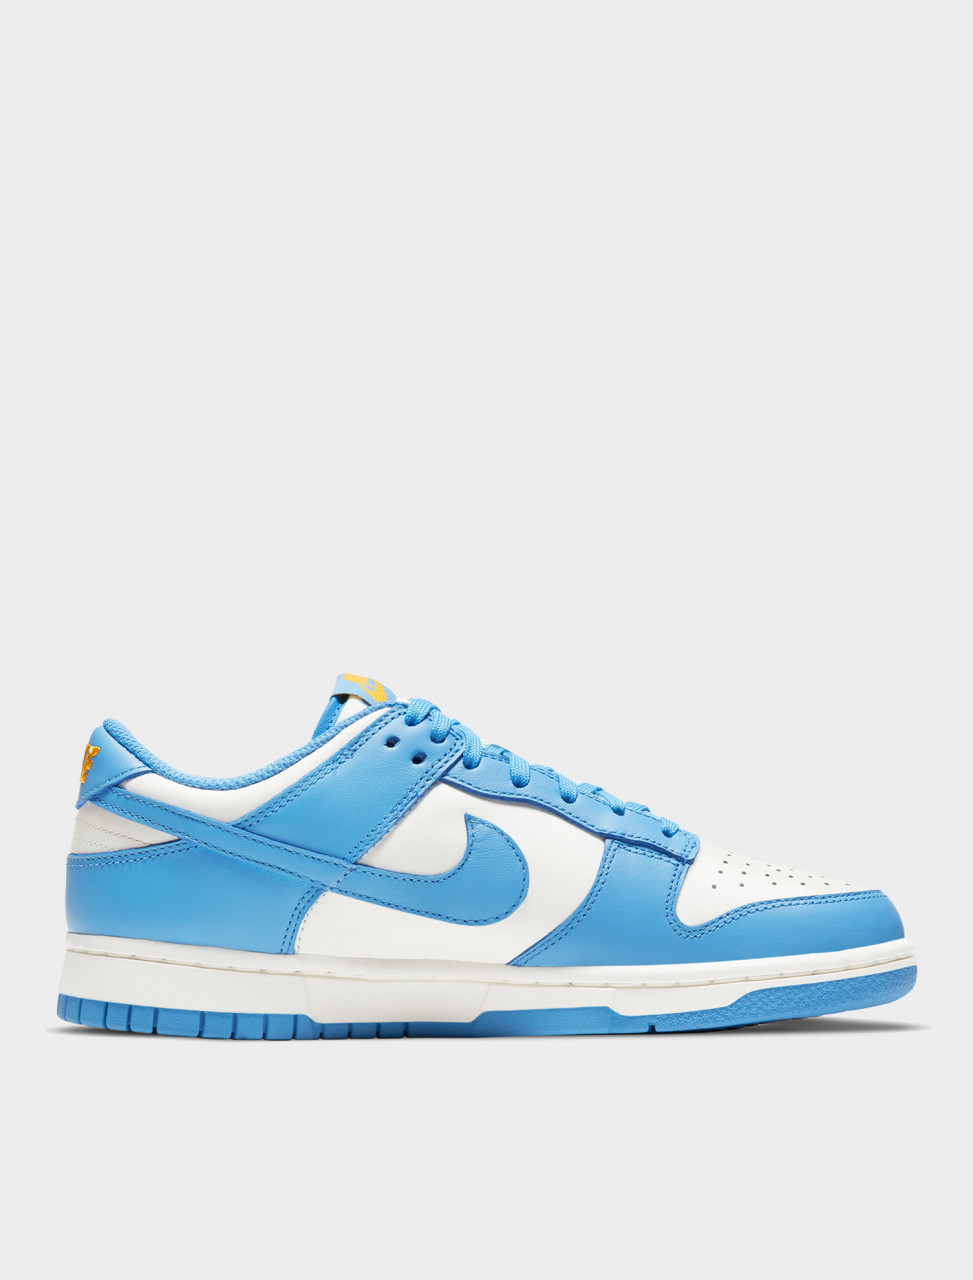 DD1503-100 Dunk Low Sail Blue